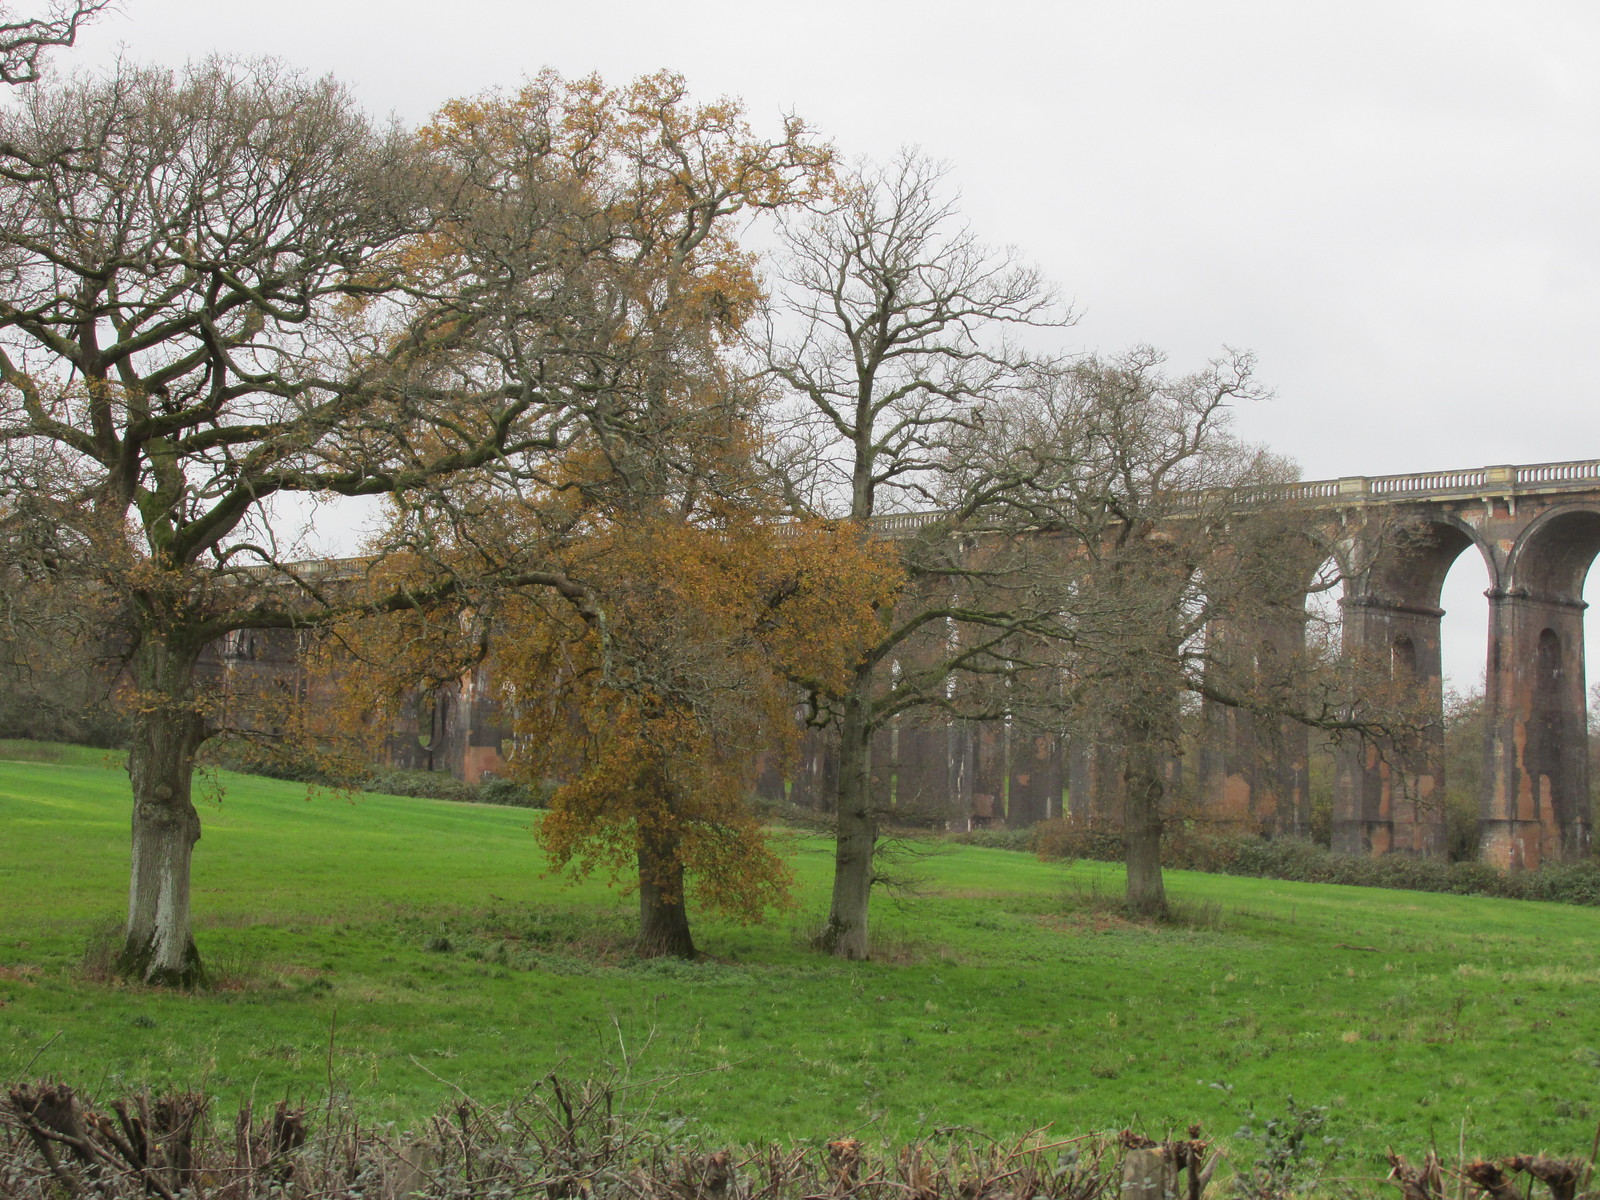 December 5, 2015: Balcombe Circular Ouse Valley Viaduct